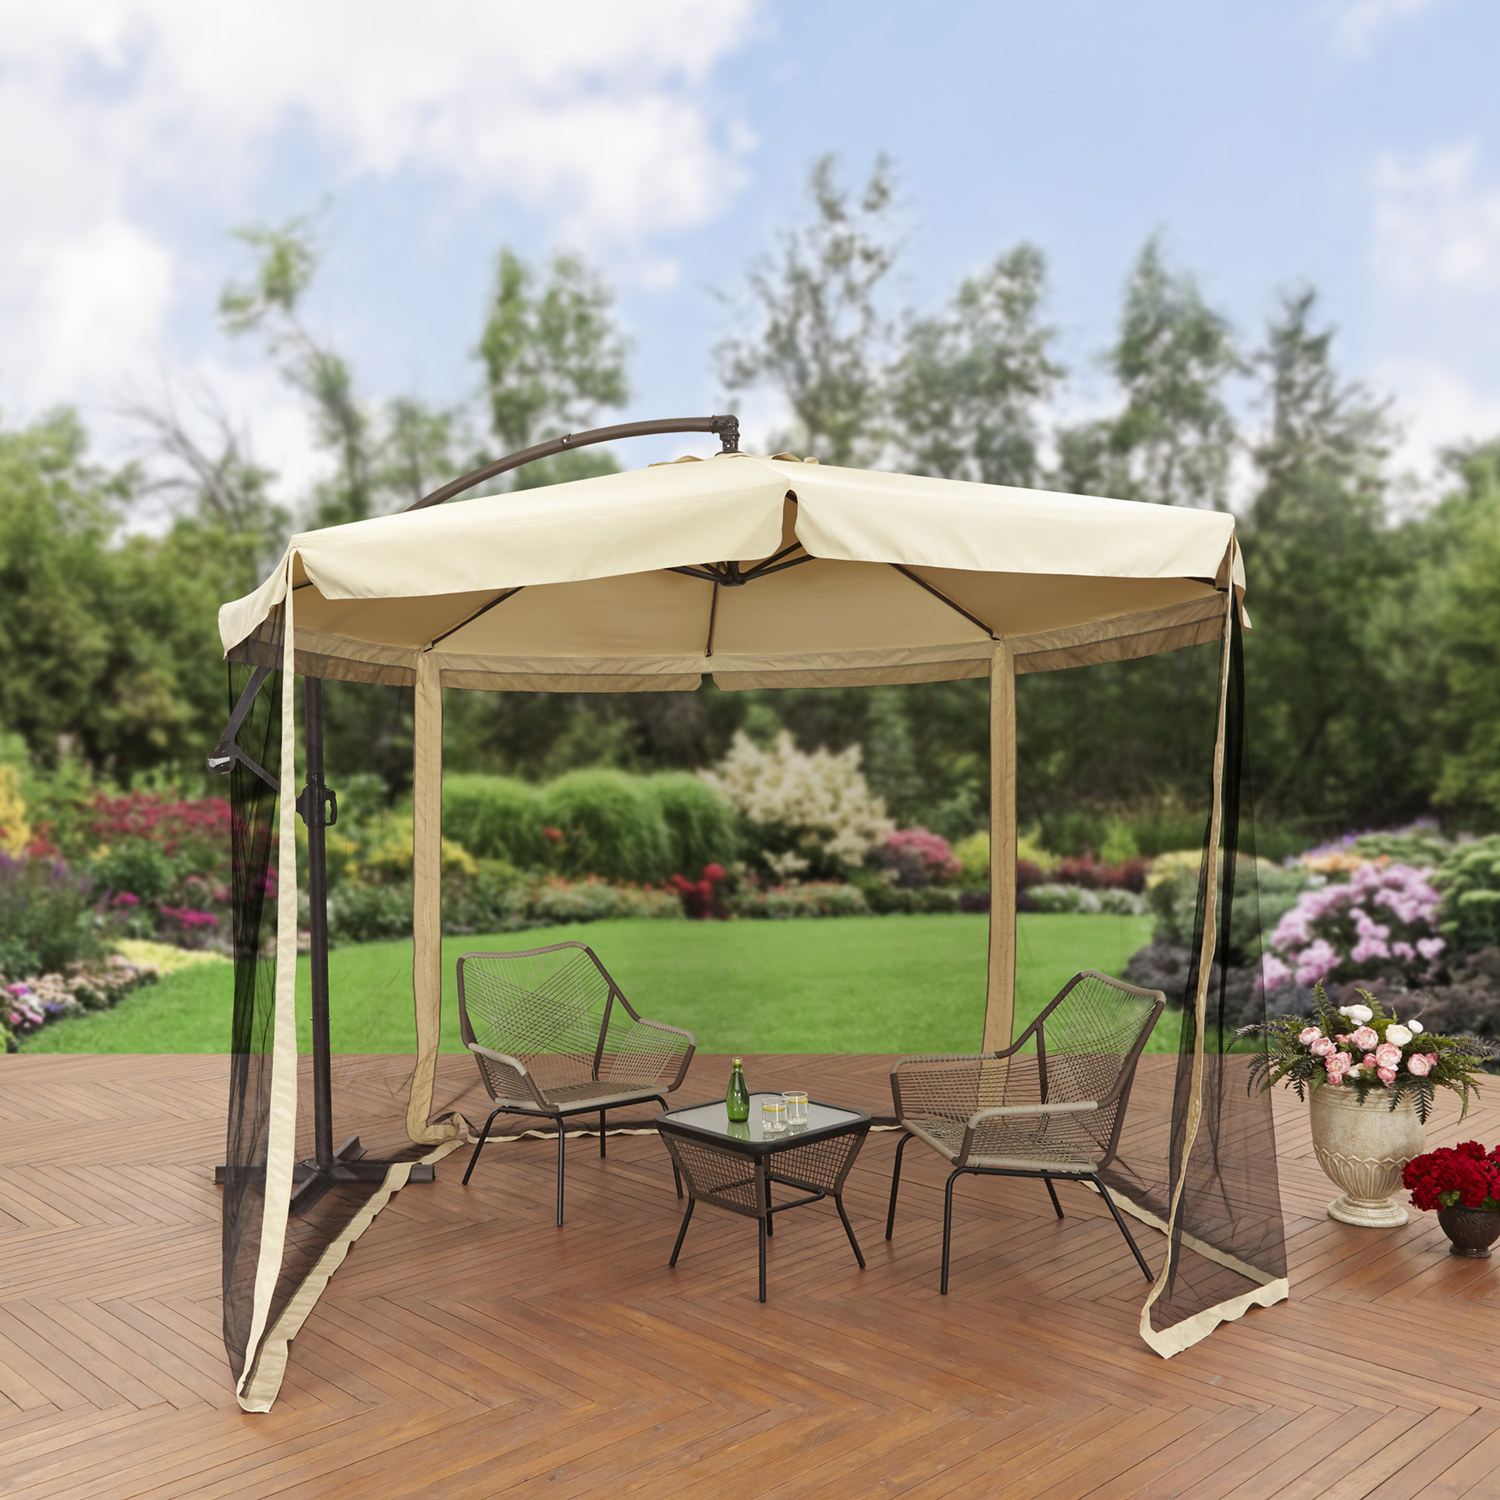 Better Homes and Gardens 11' Offset Umbrella with Detachable Net, Tan by NINGBO EVERLUCK OUTDOOR PRODUCTS MANUFACTING CO LTD